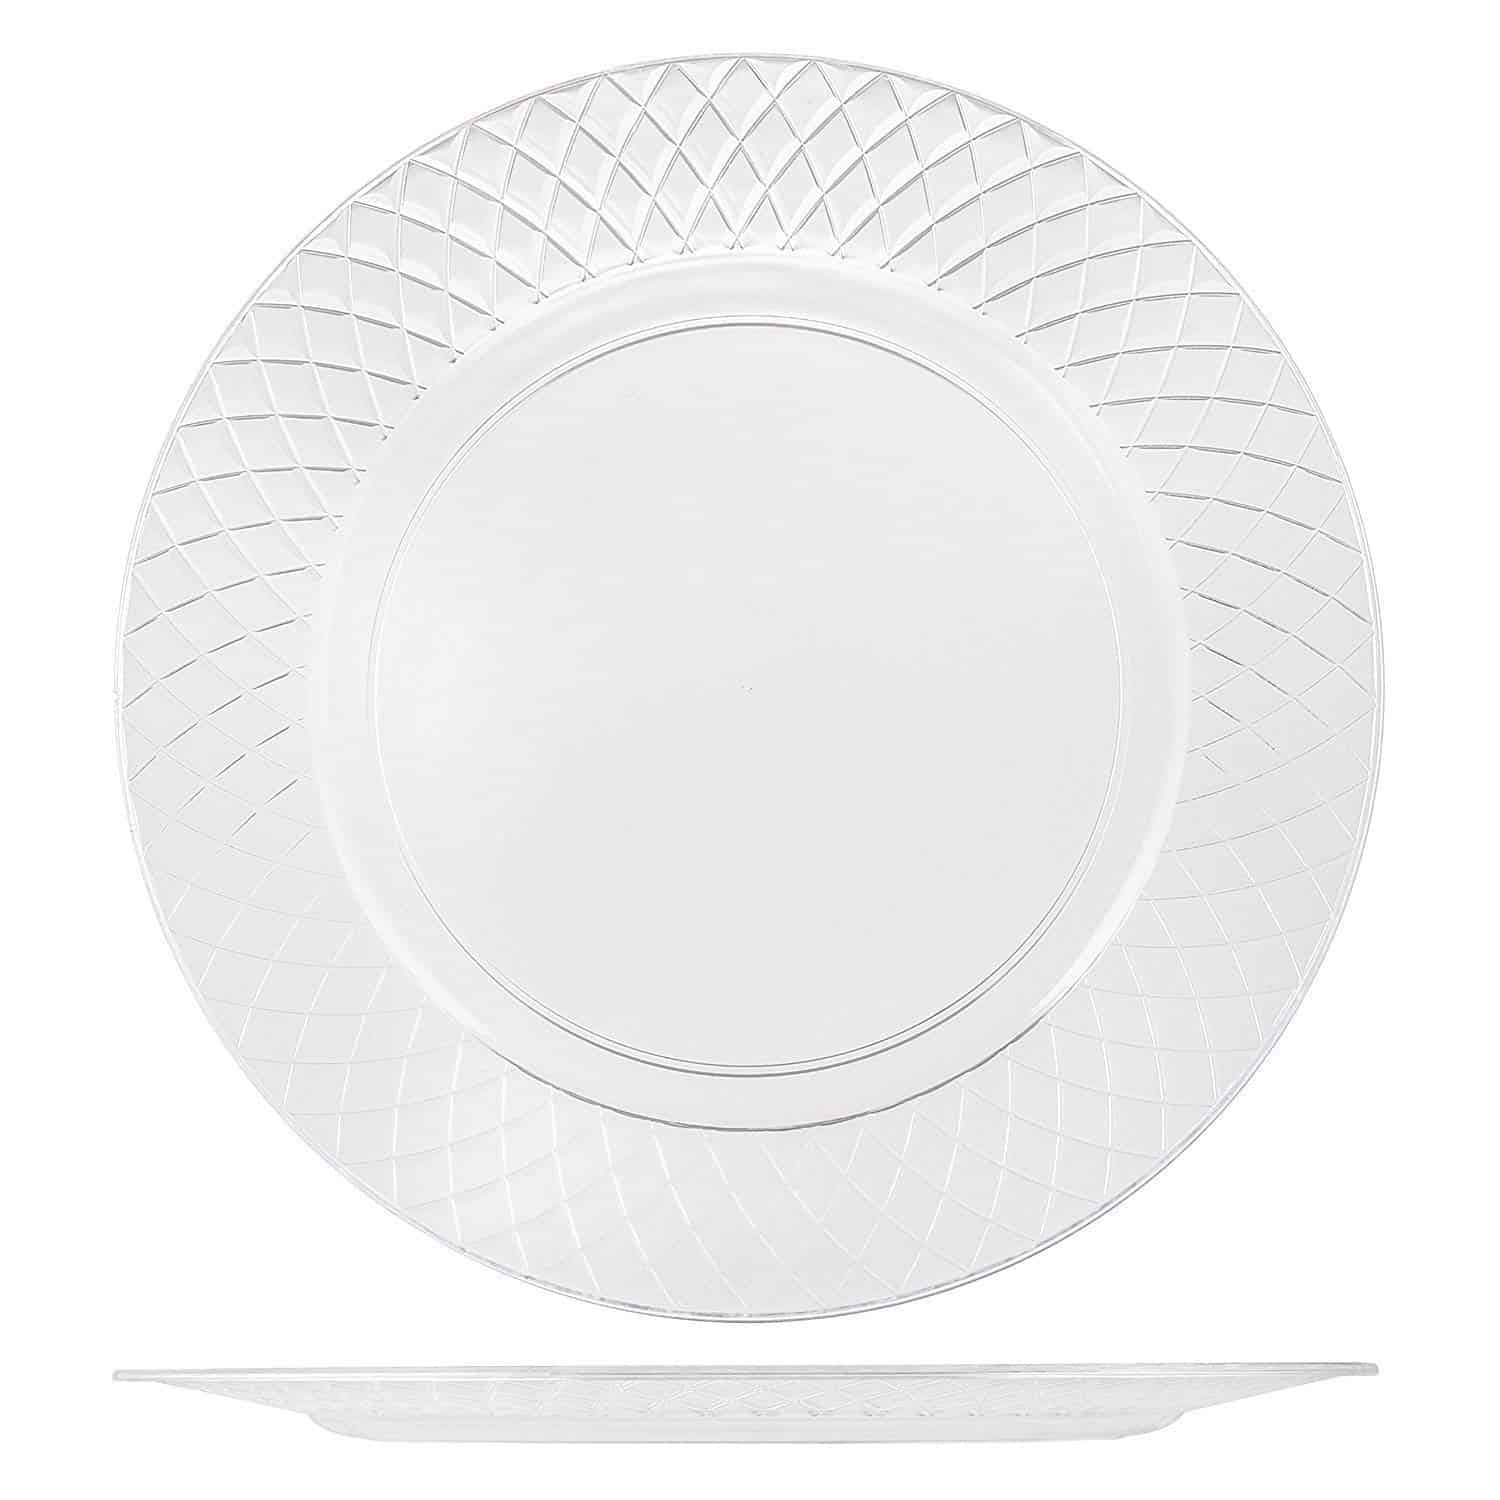 This plate's crystal-clear construction expertly showcases colorful appetizers, classic tossed salads, and your signature grilled chicken entrees.